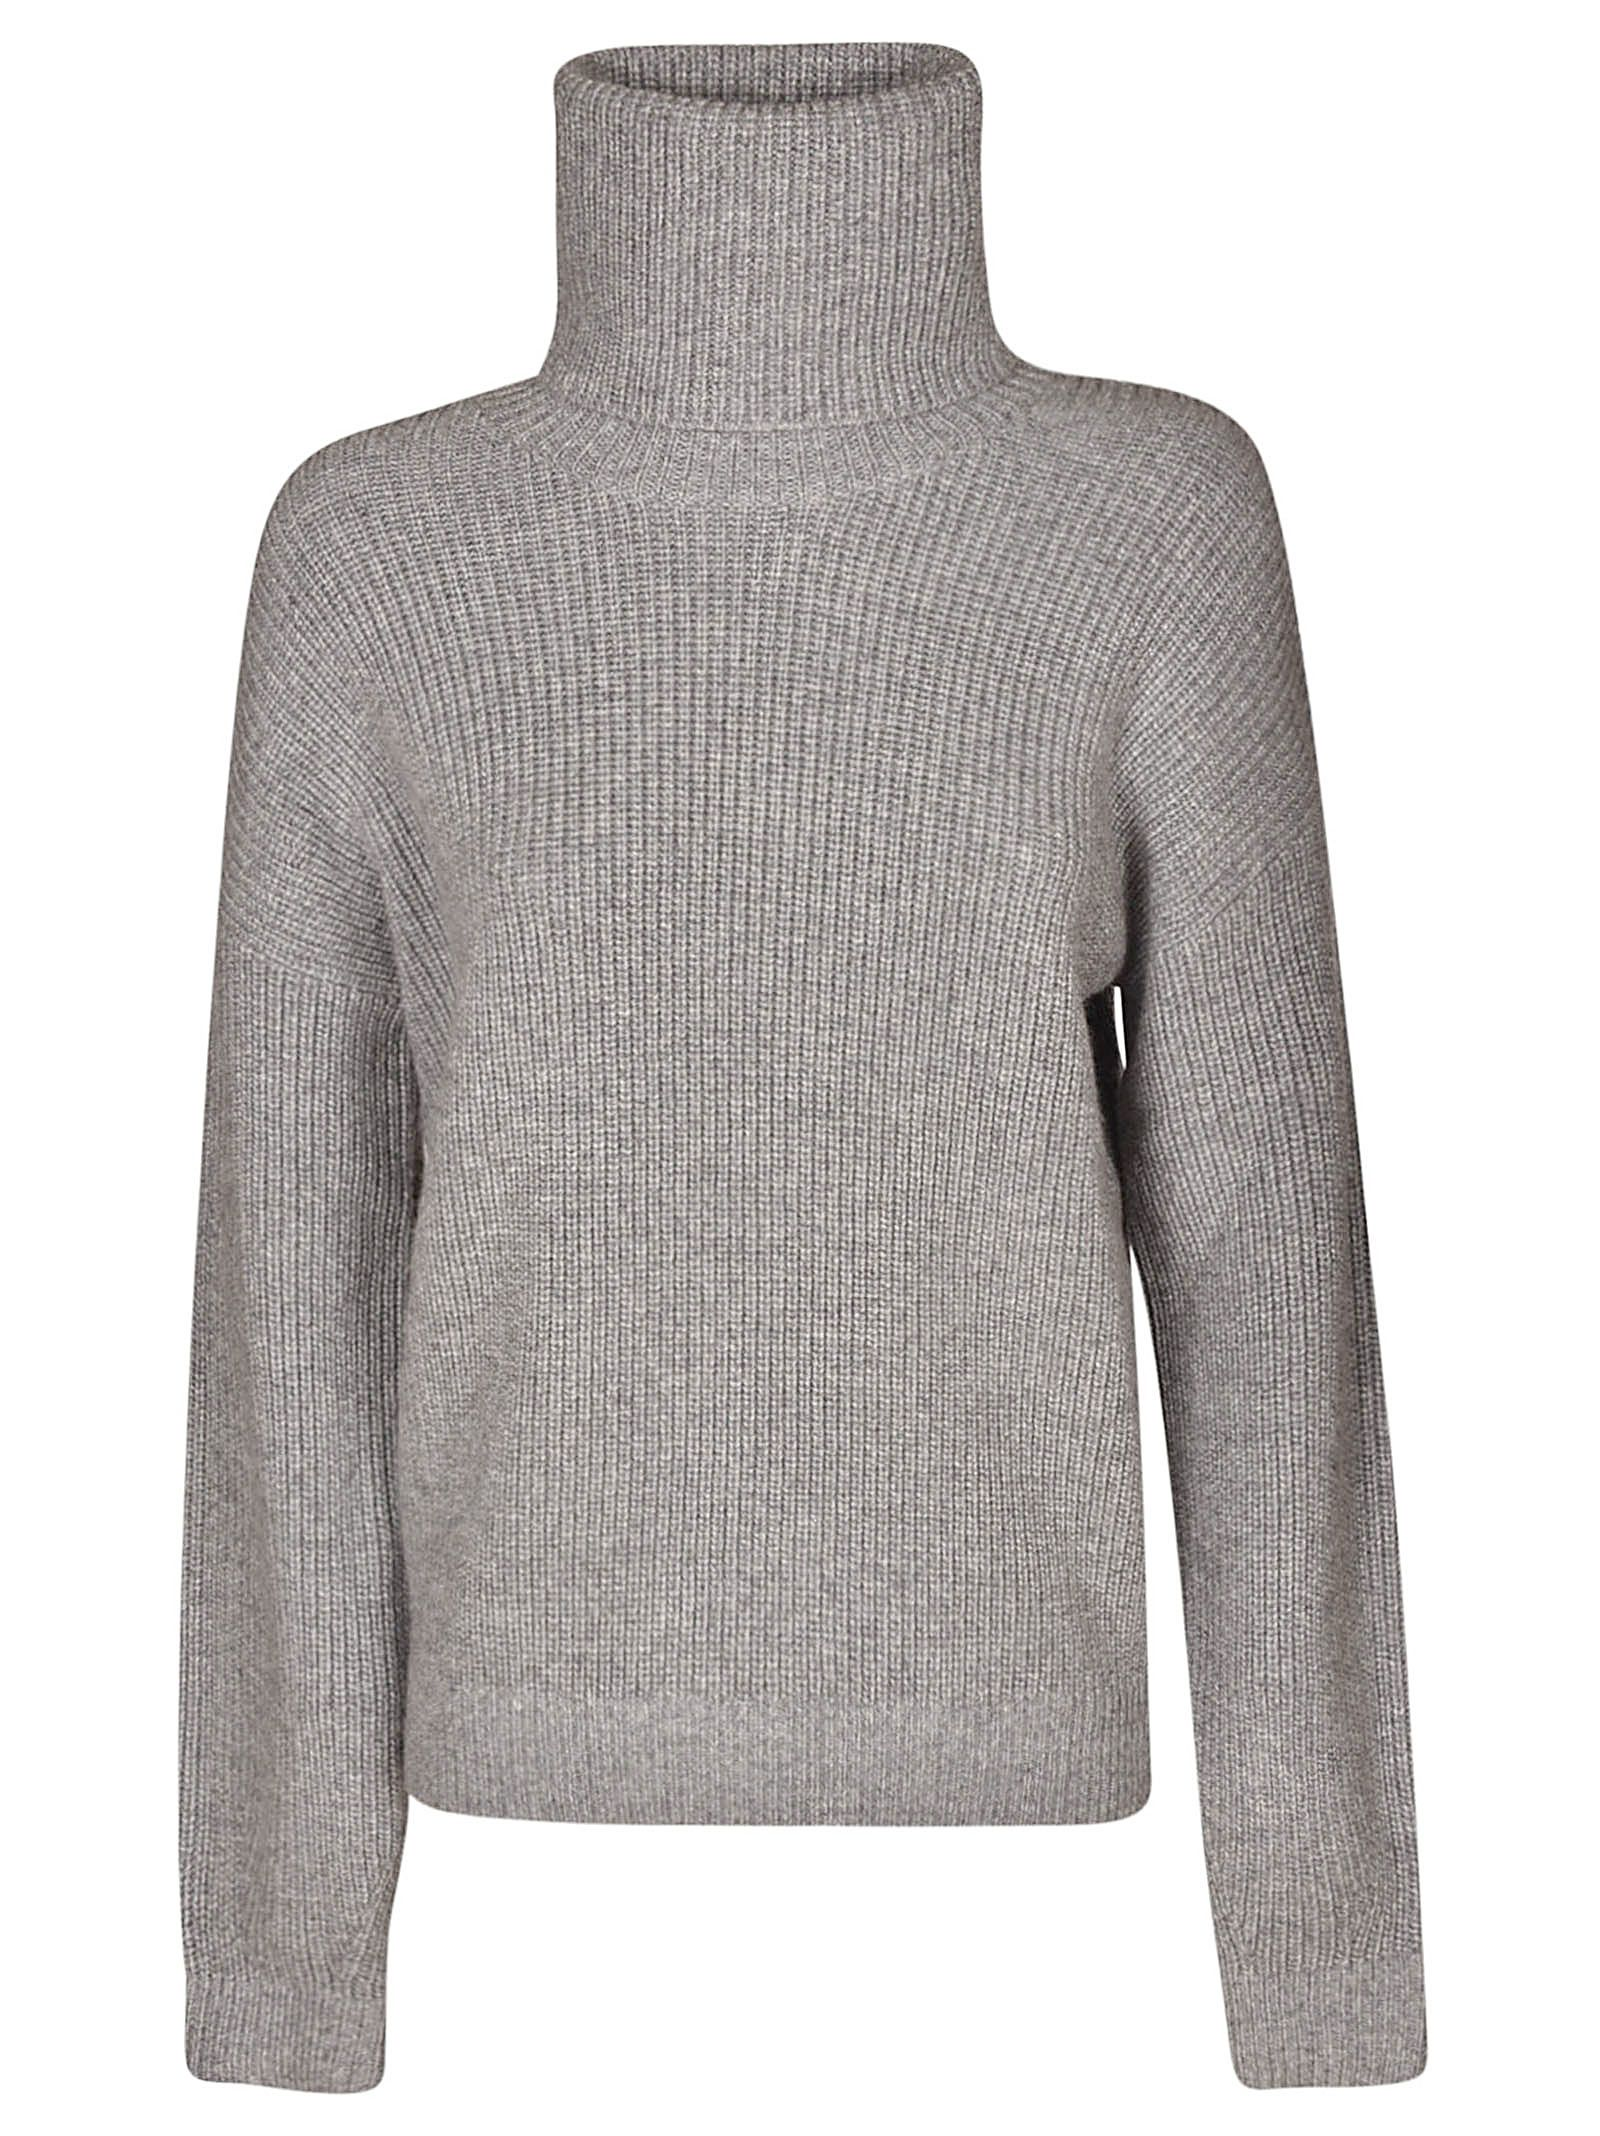 Tory Burch Roll Neck Jumper